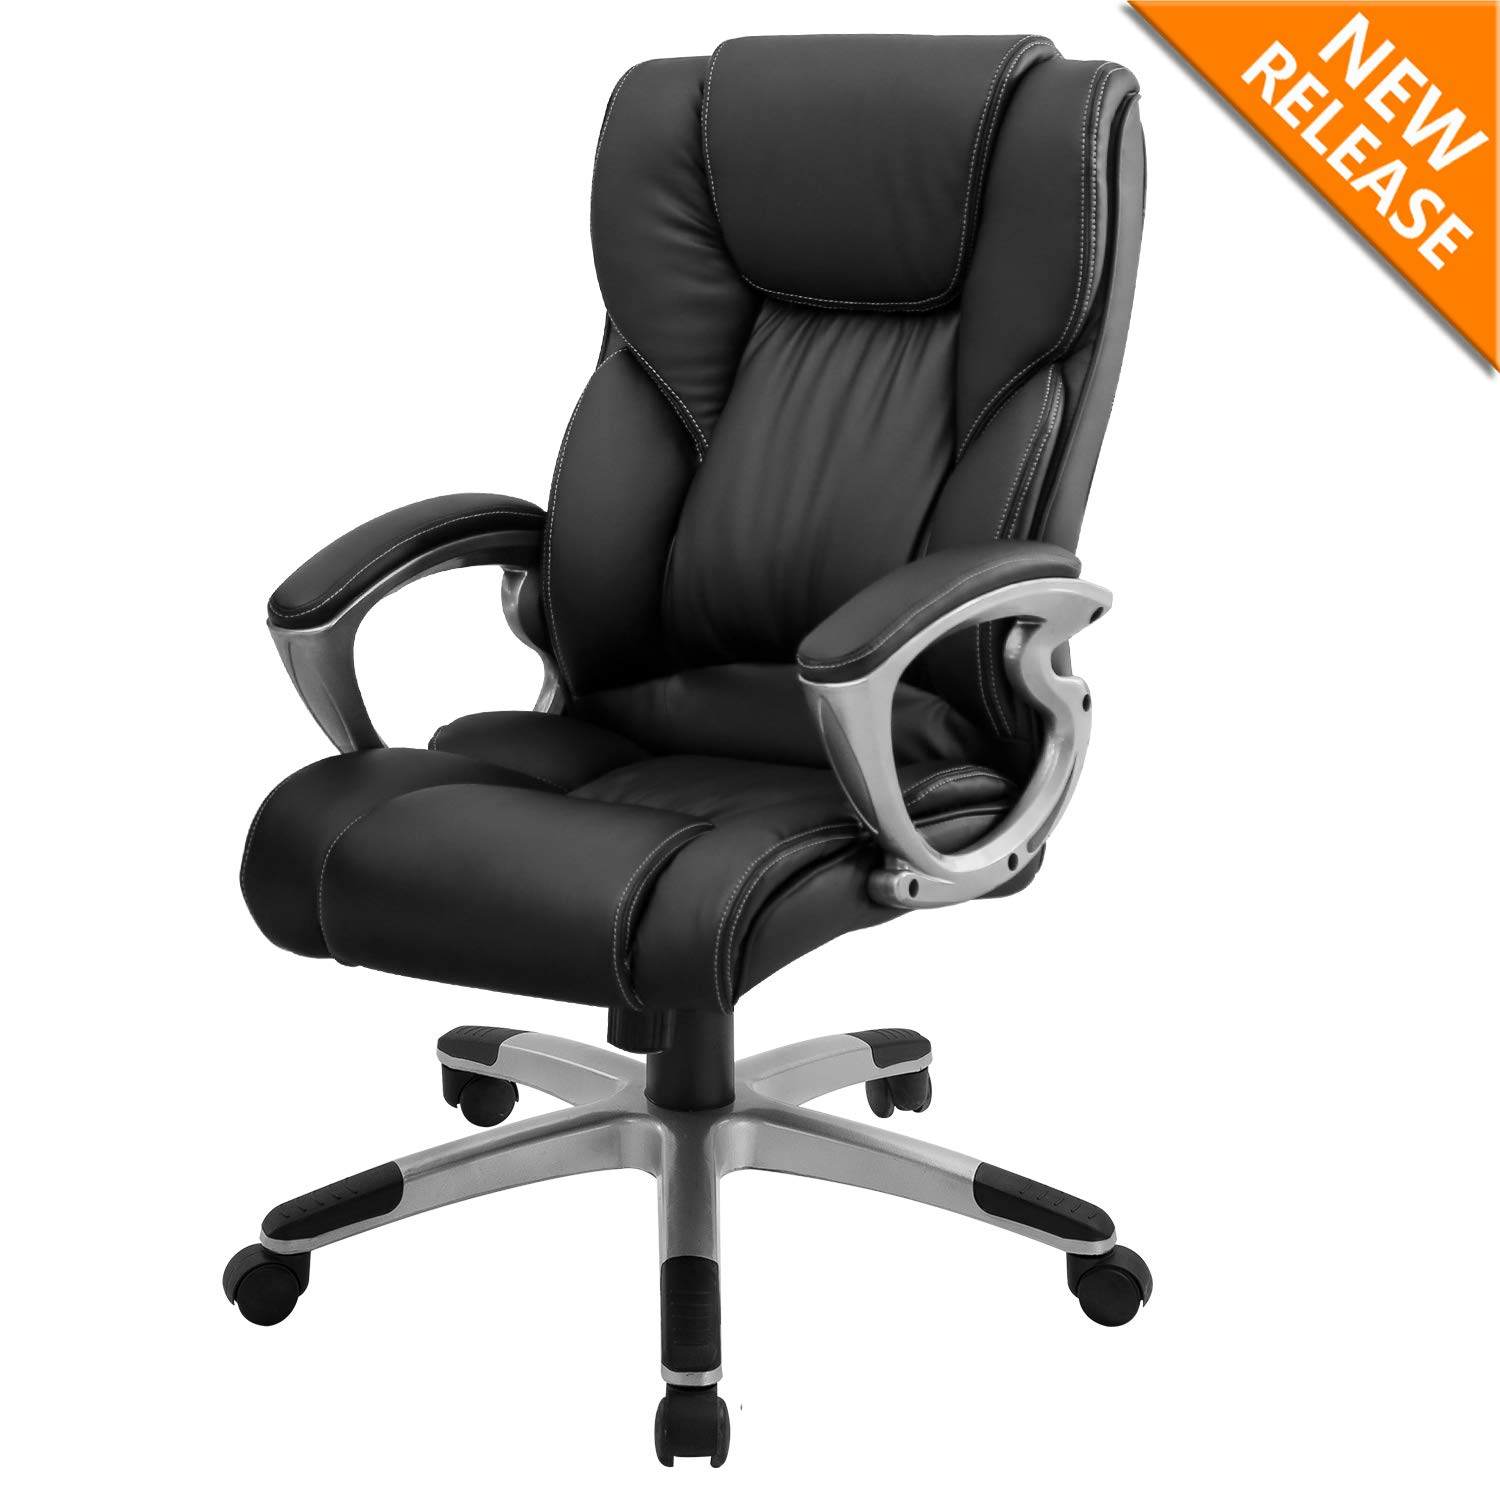 B2C2B Leather Executive Office Chair Computer Desk Chair Ergonomic Adjustable Racing Chair Task Swivel Chair Armrest and Lumbar Support Black